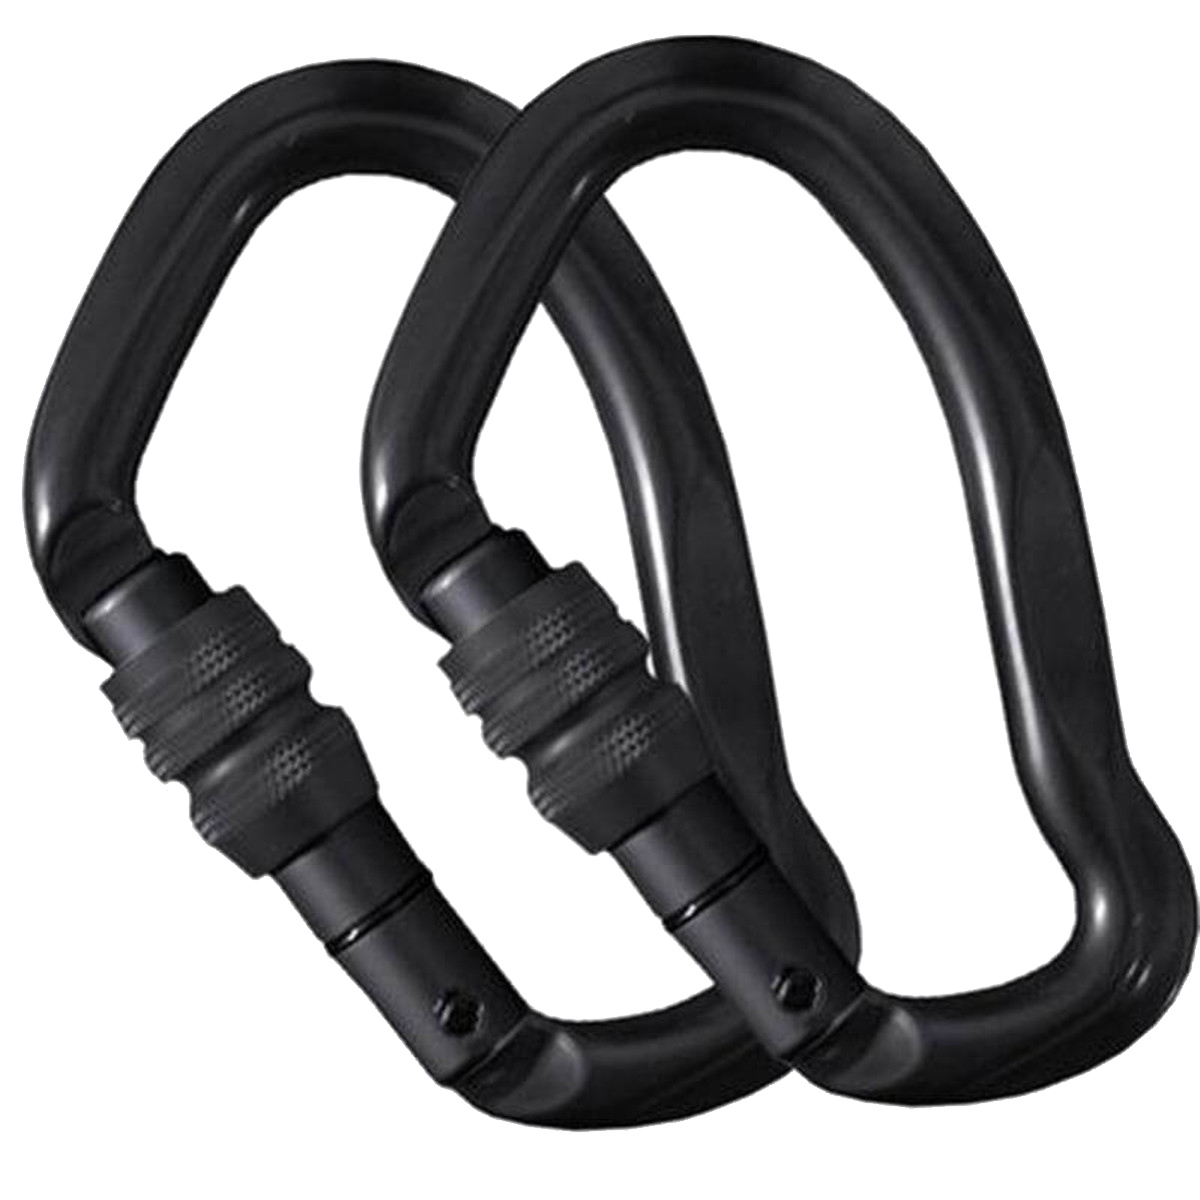 Treestand Rated to 5600 lbs 2 Locking Carabiners Hunting High-Strength